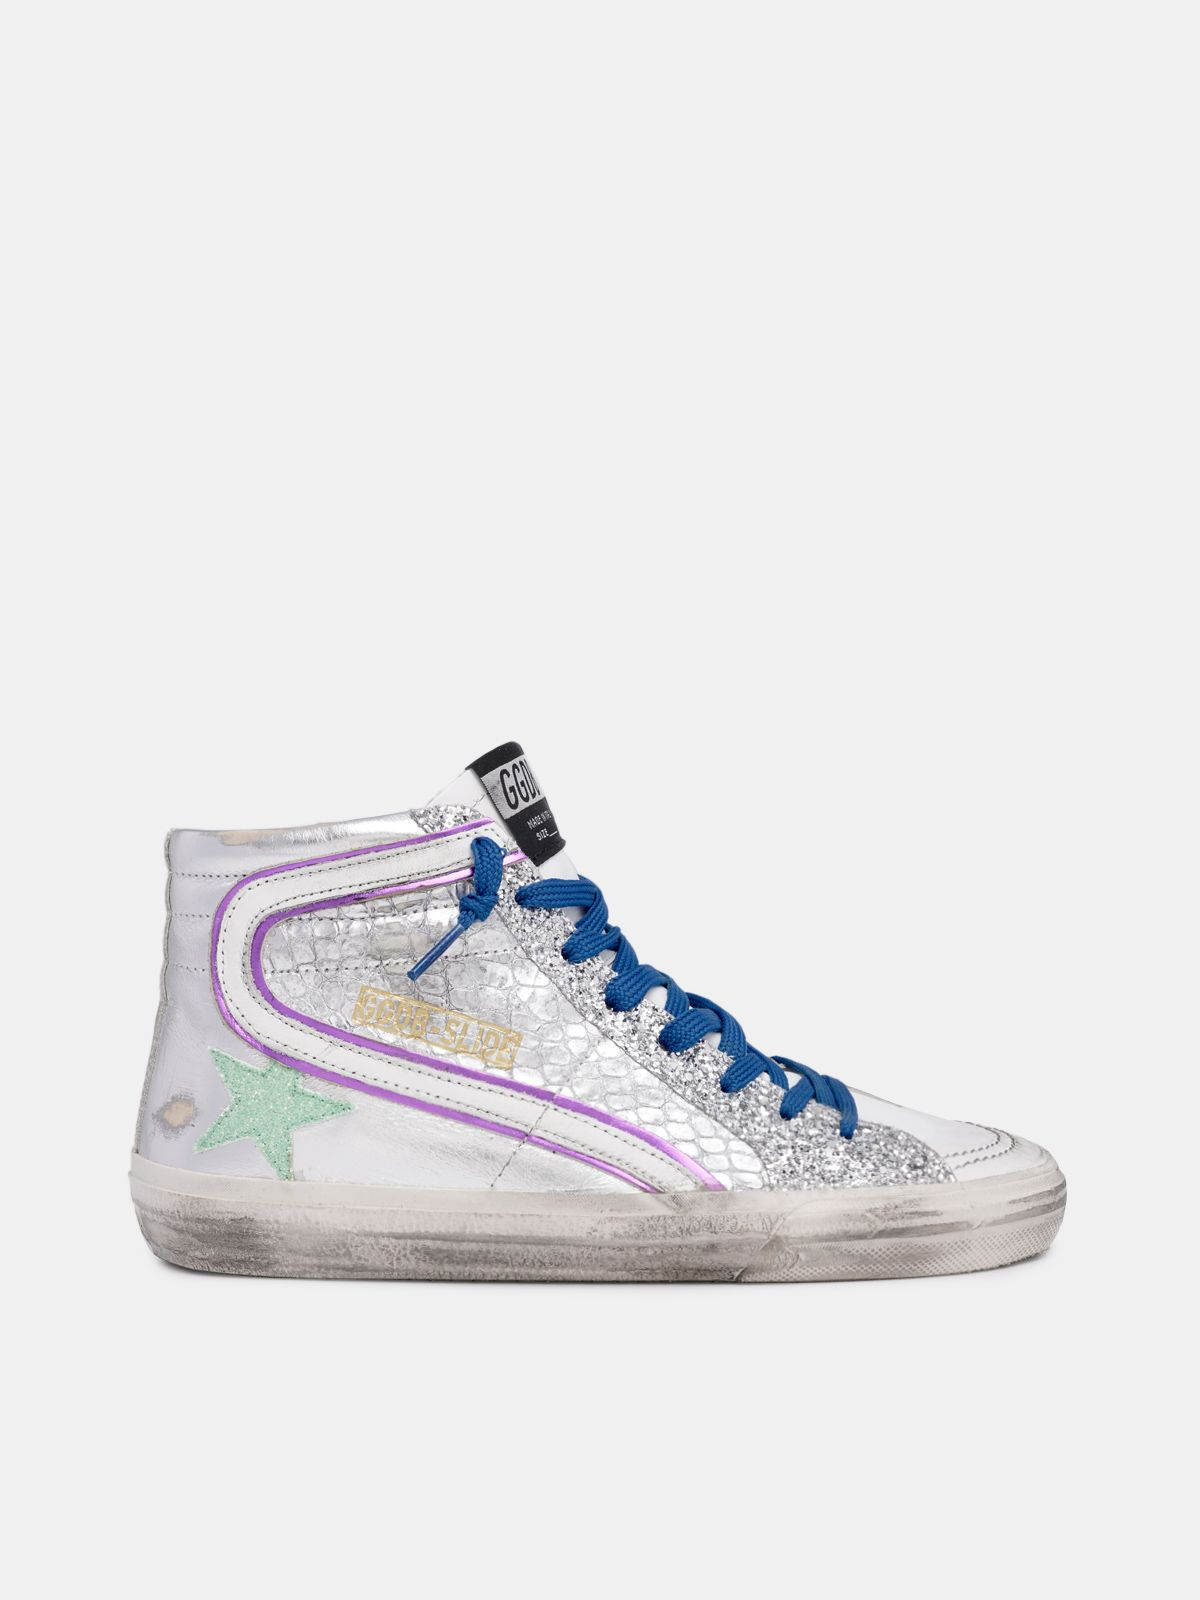 Golden Goose - Silver Slide sneakers with glitter   in